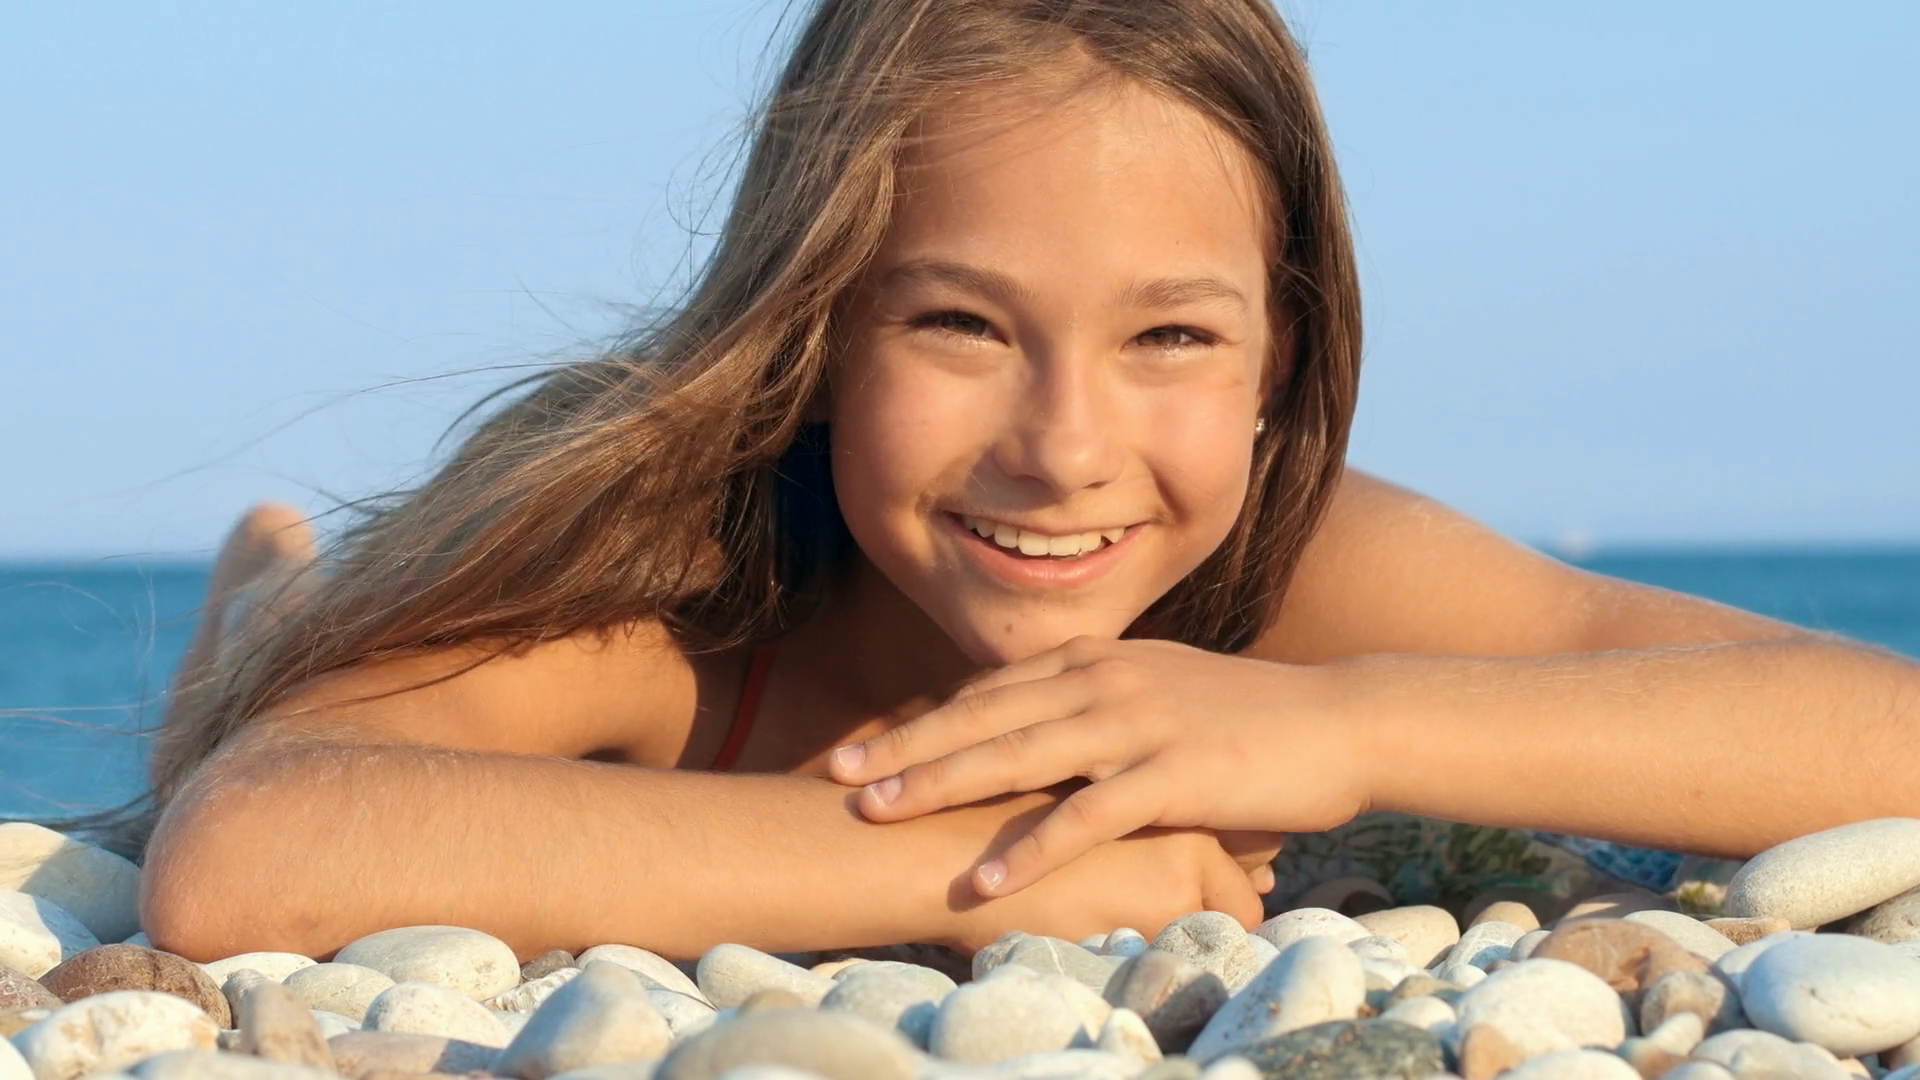 Young girl smiling on sea beach. Portrait of smiling girl